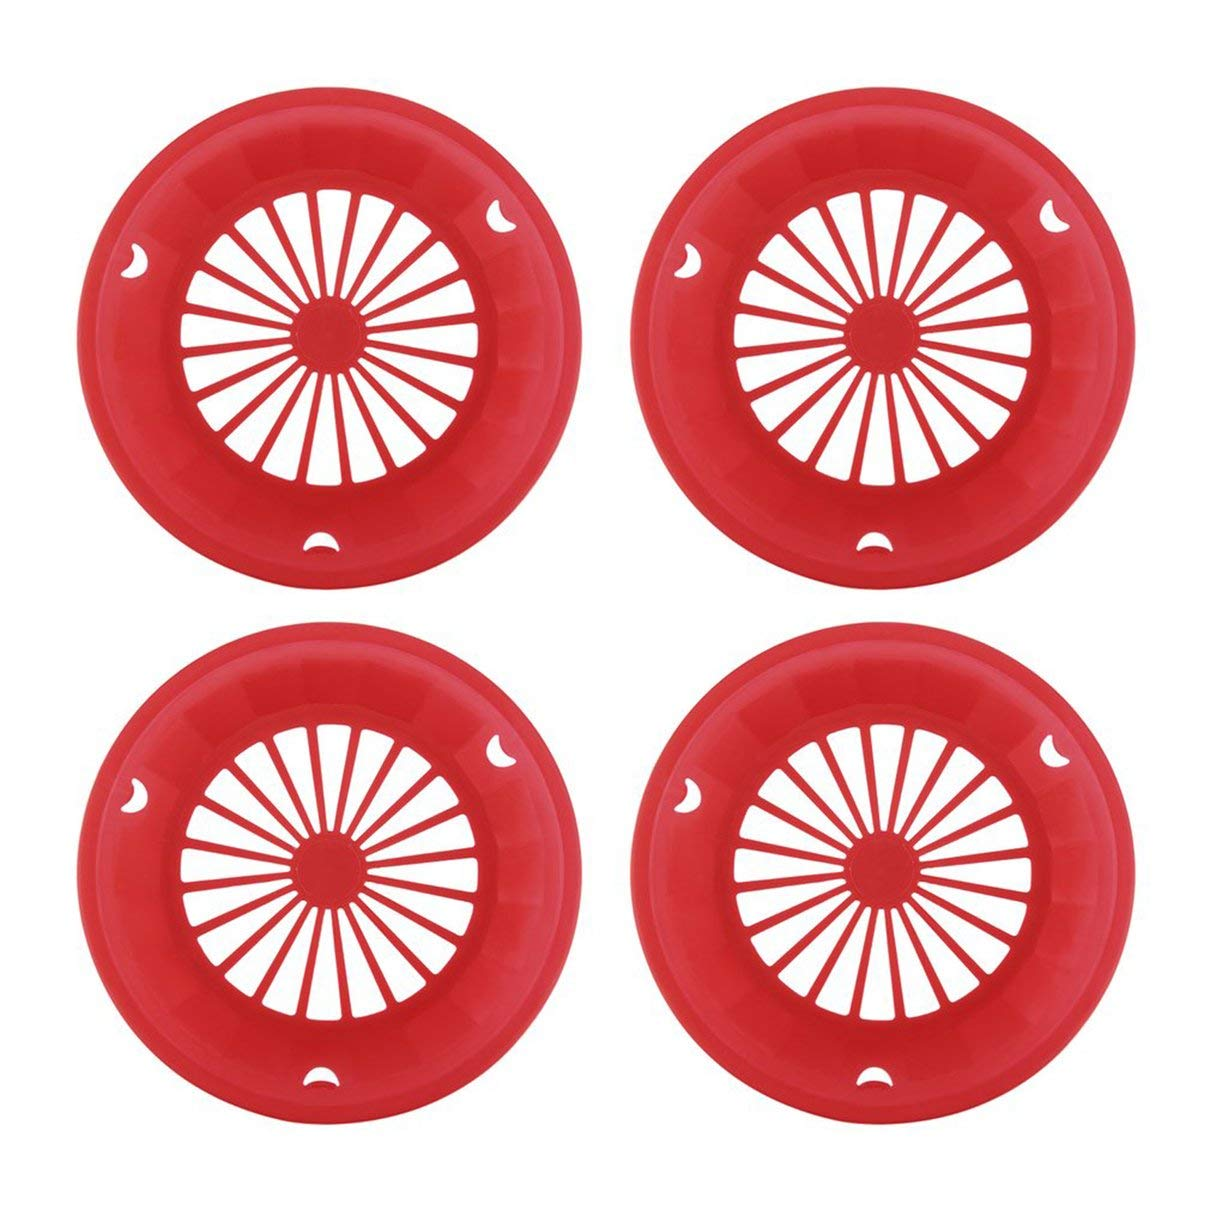 Bellaluee 4 pcs Plastic Paper Plate Holders Reusable 3-tab Style Picnic BBQ Camping Parties Plate Tableware Barbeque Accessories